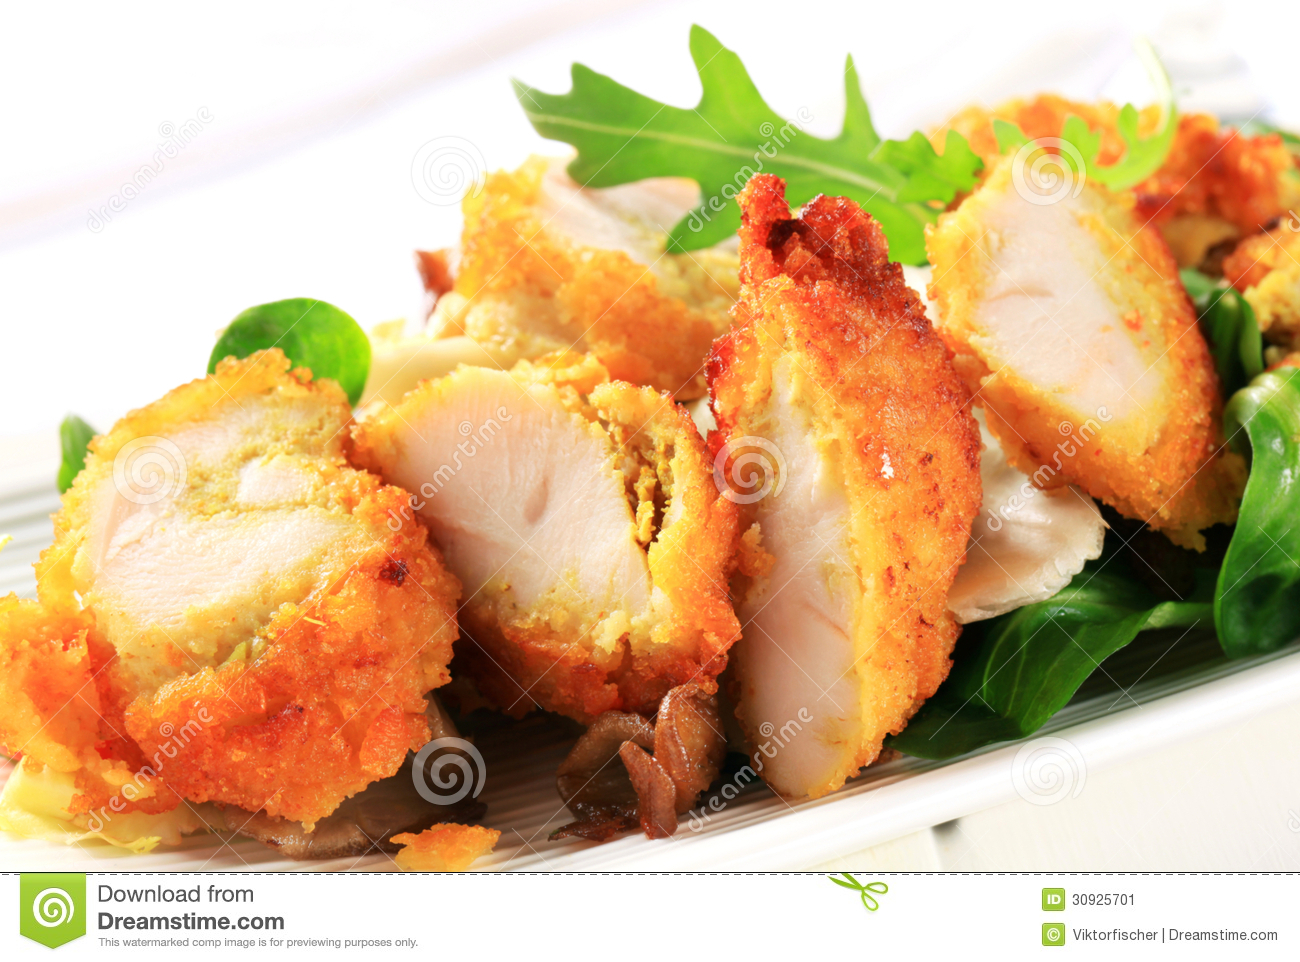 Breaded chicken breast with salad greens